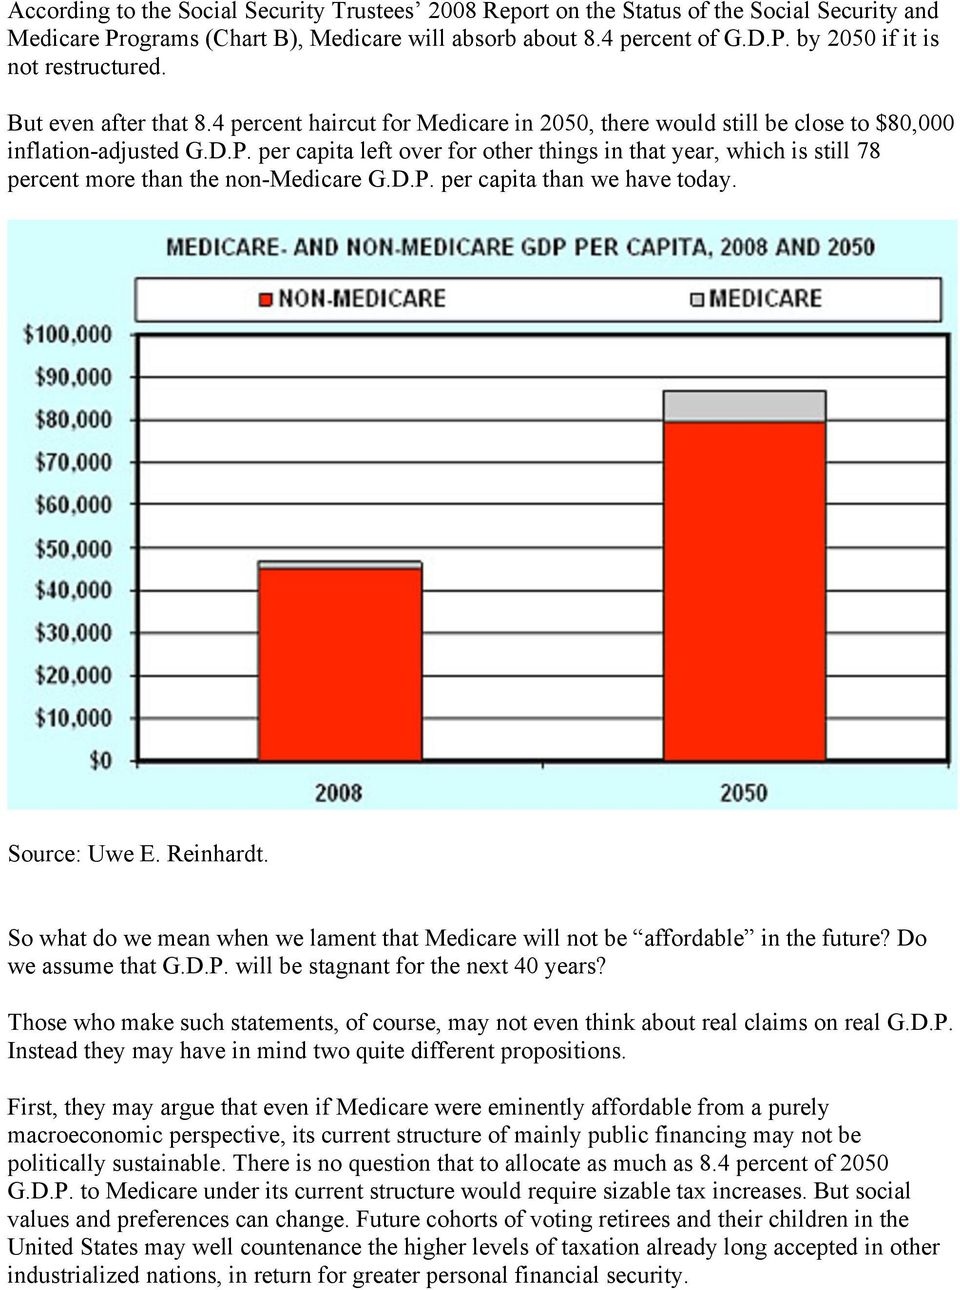 per capita left over for other things in that year, which is still 78 percent more than the non-medicare G.D.P. per capita than we have today. Source: Uwe E. Reinhardt.